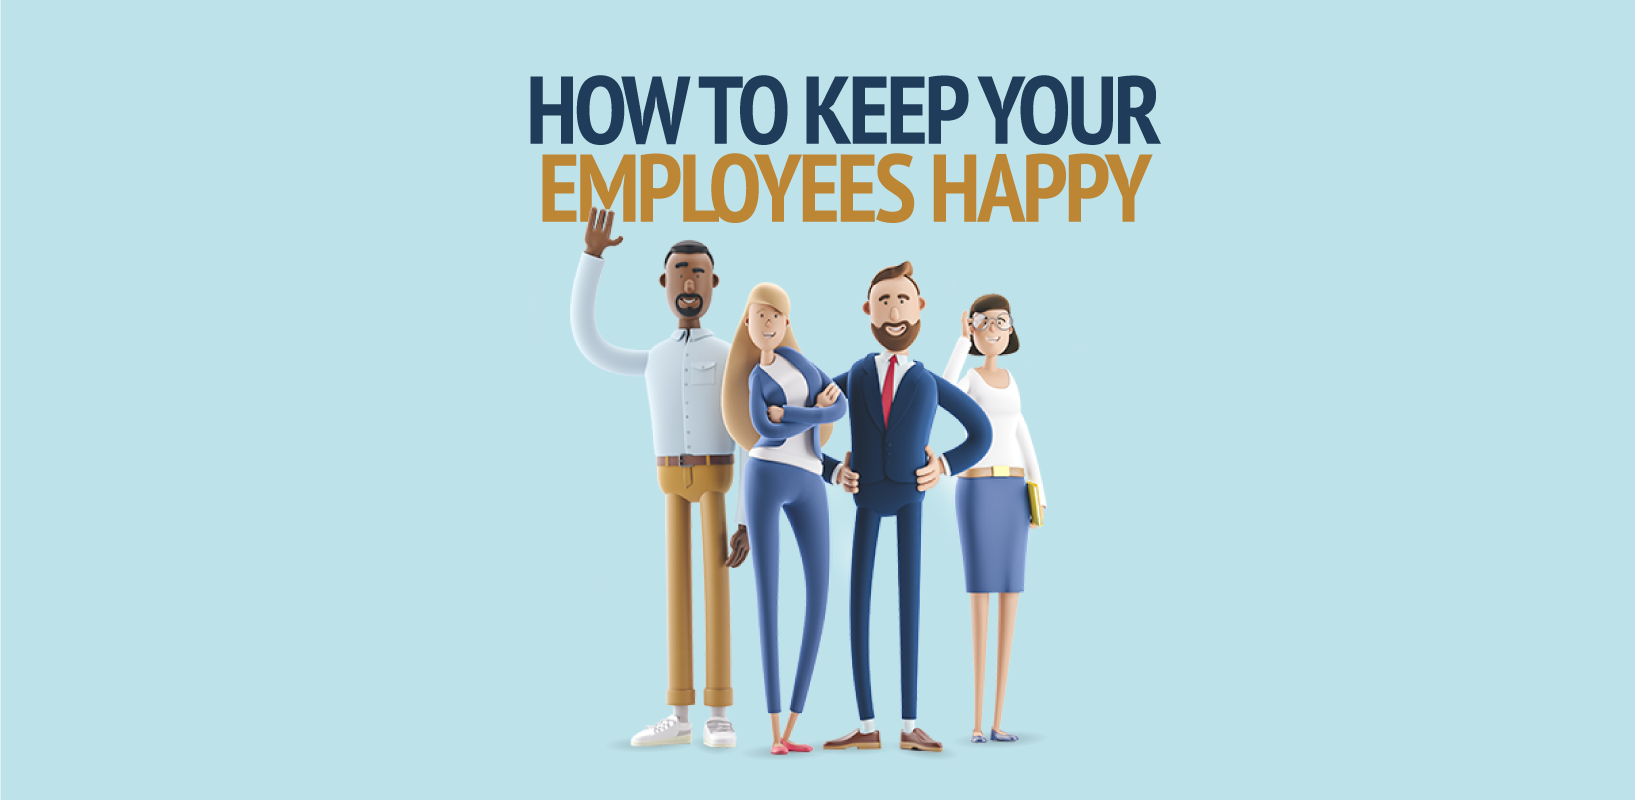 Keeping your employees happy